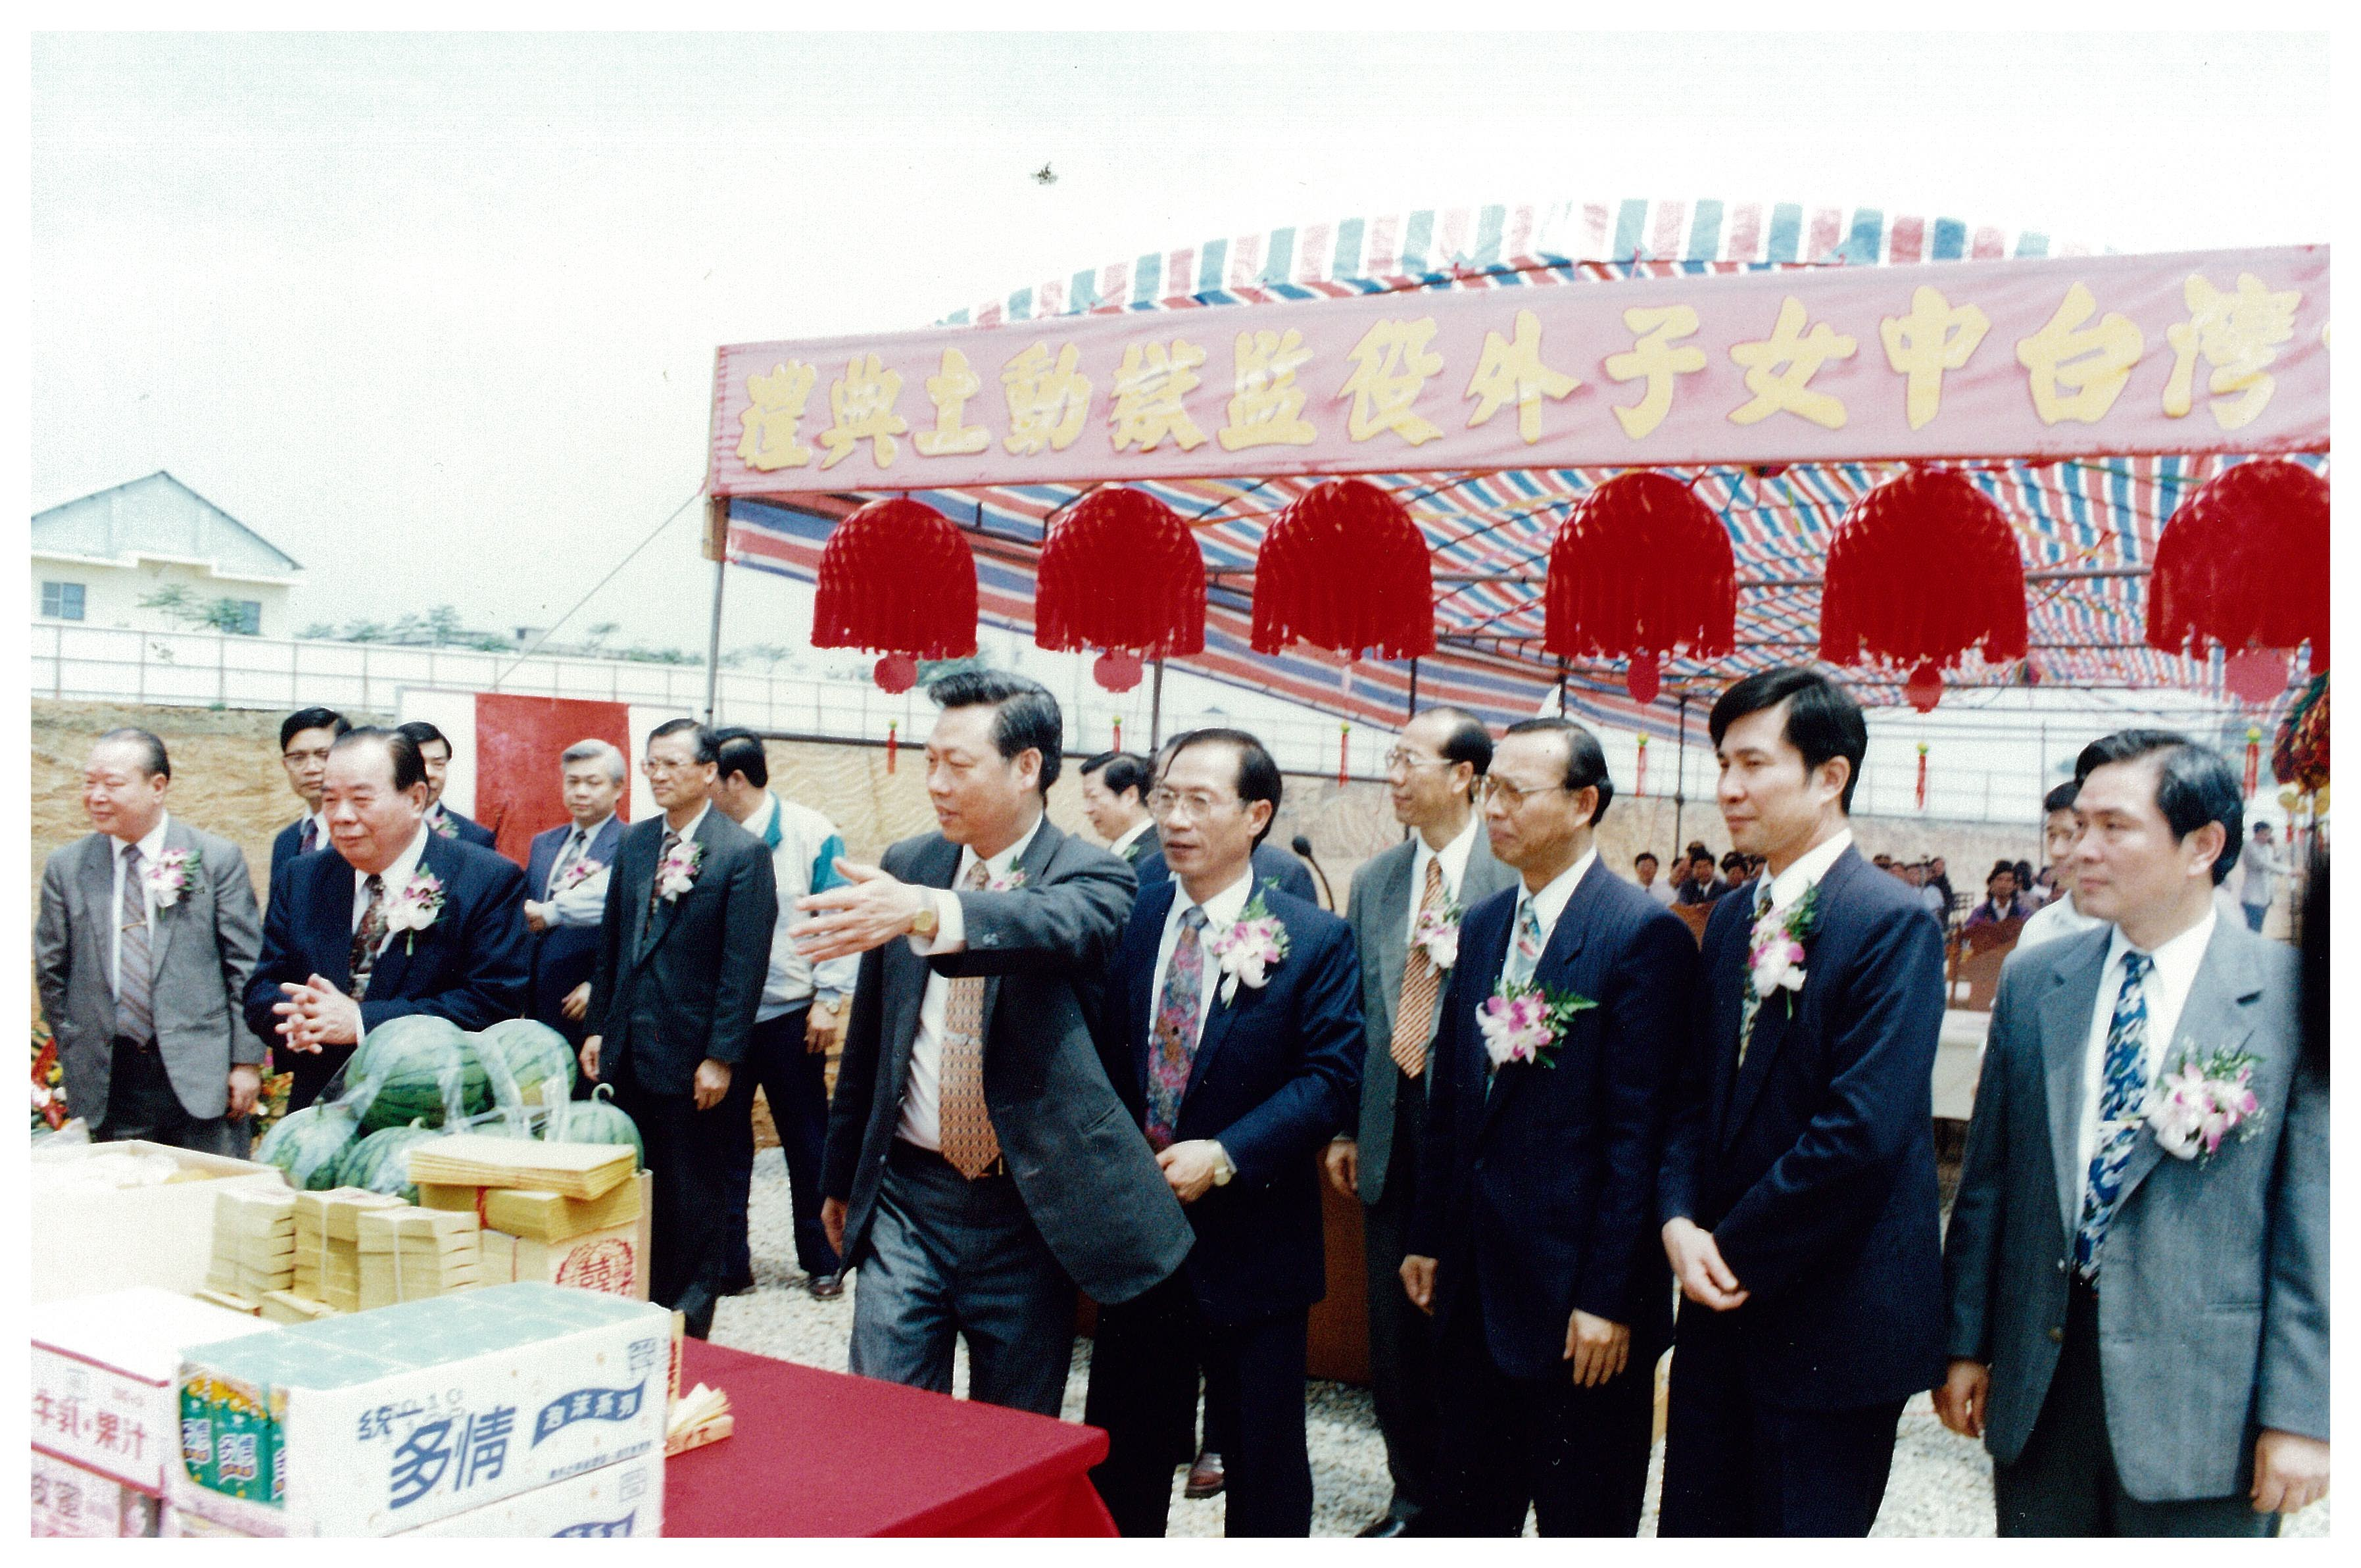 Taichung Women 's Labor Prison Ground Breaking Ceremony hosted by Mr. Lin